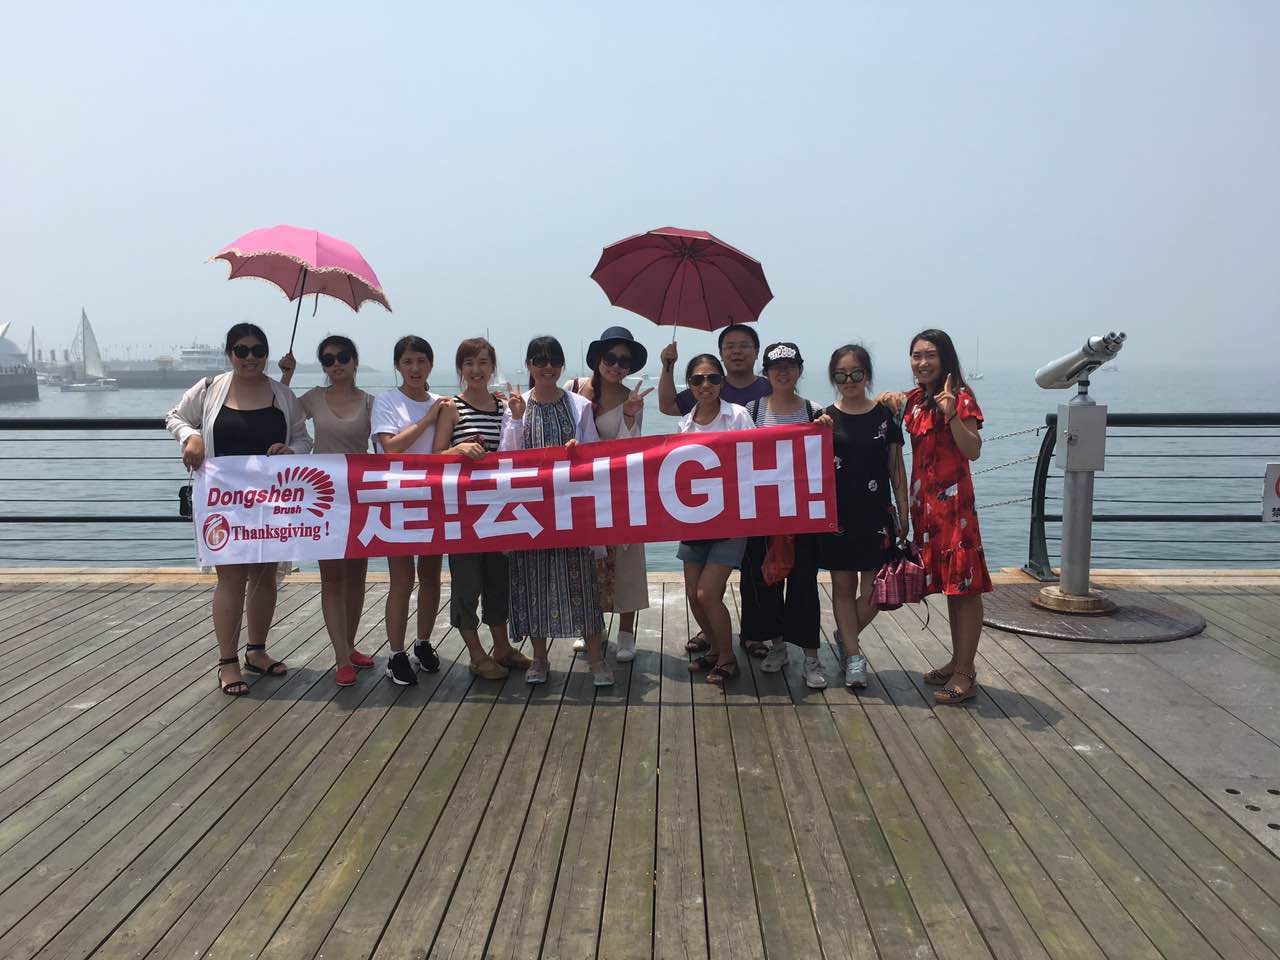 We went to the beautiful seaside city of Qingdao, China